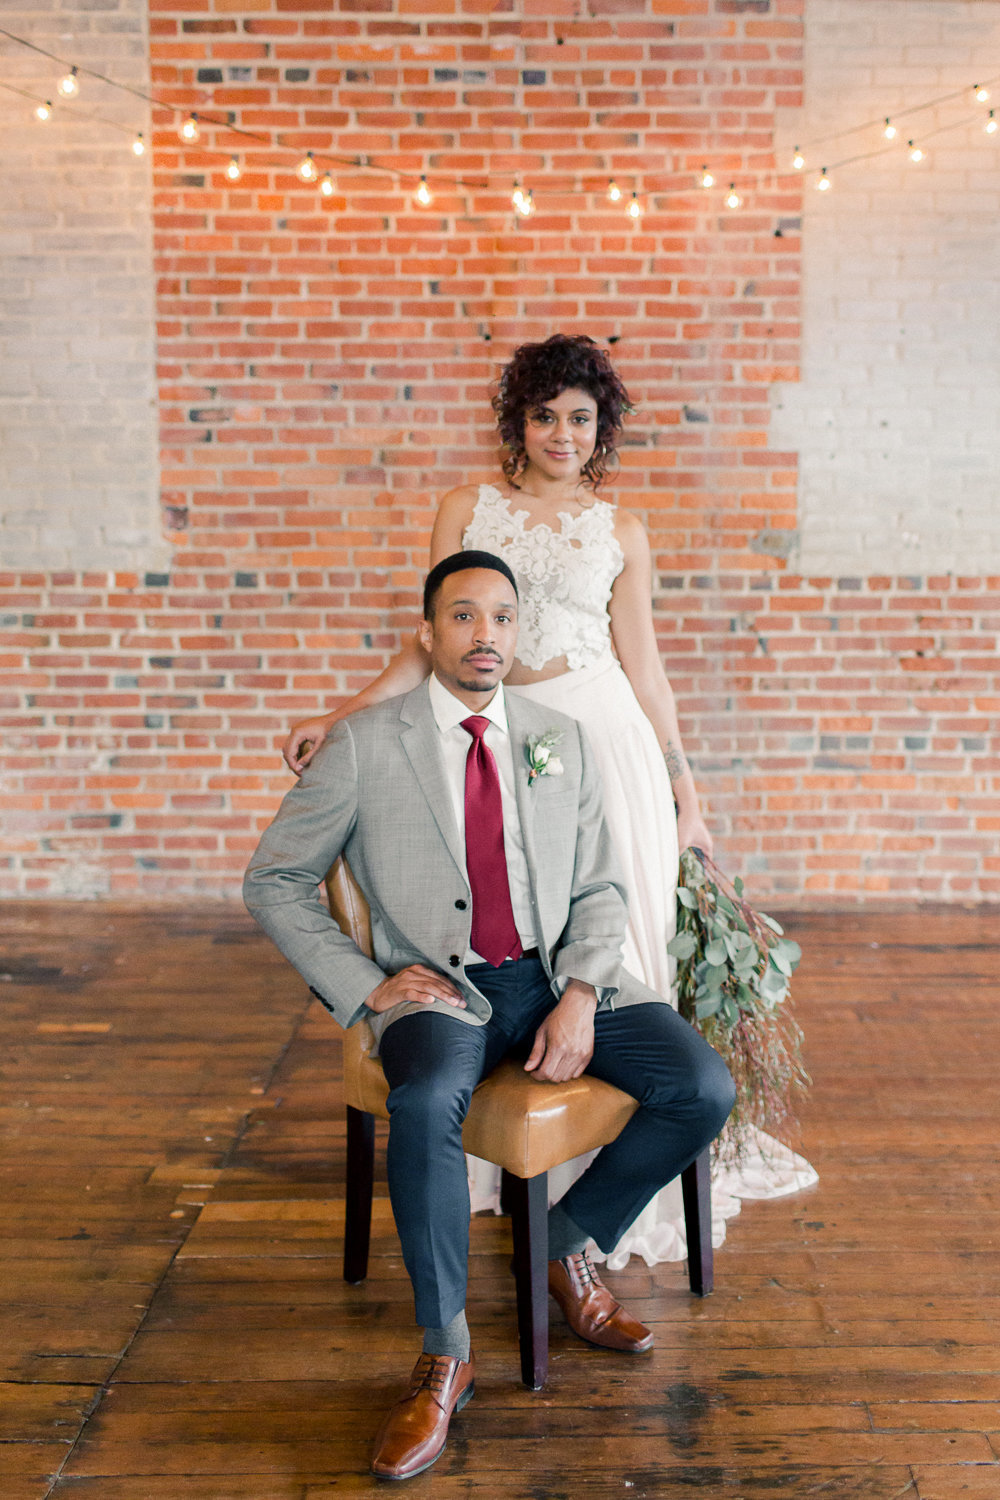 blue duck kitchen and bar wedding and elopement event space rochester minnesota brick and wood loft space